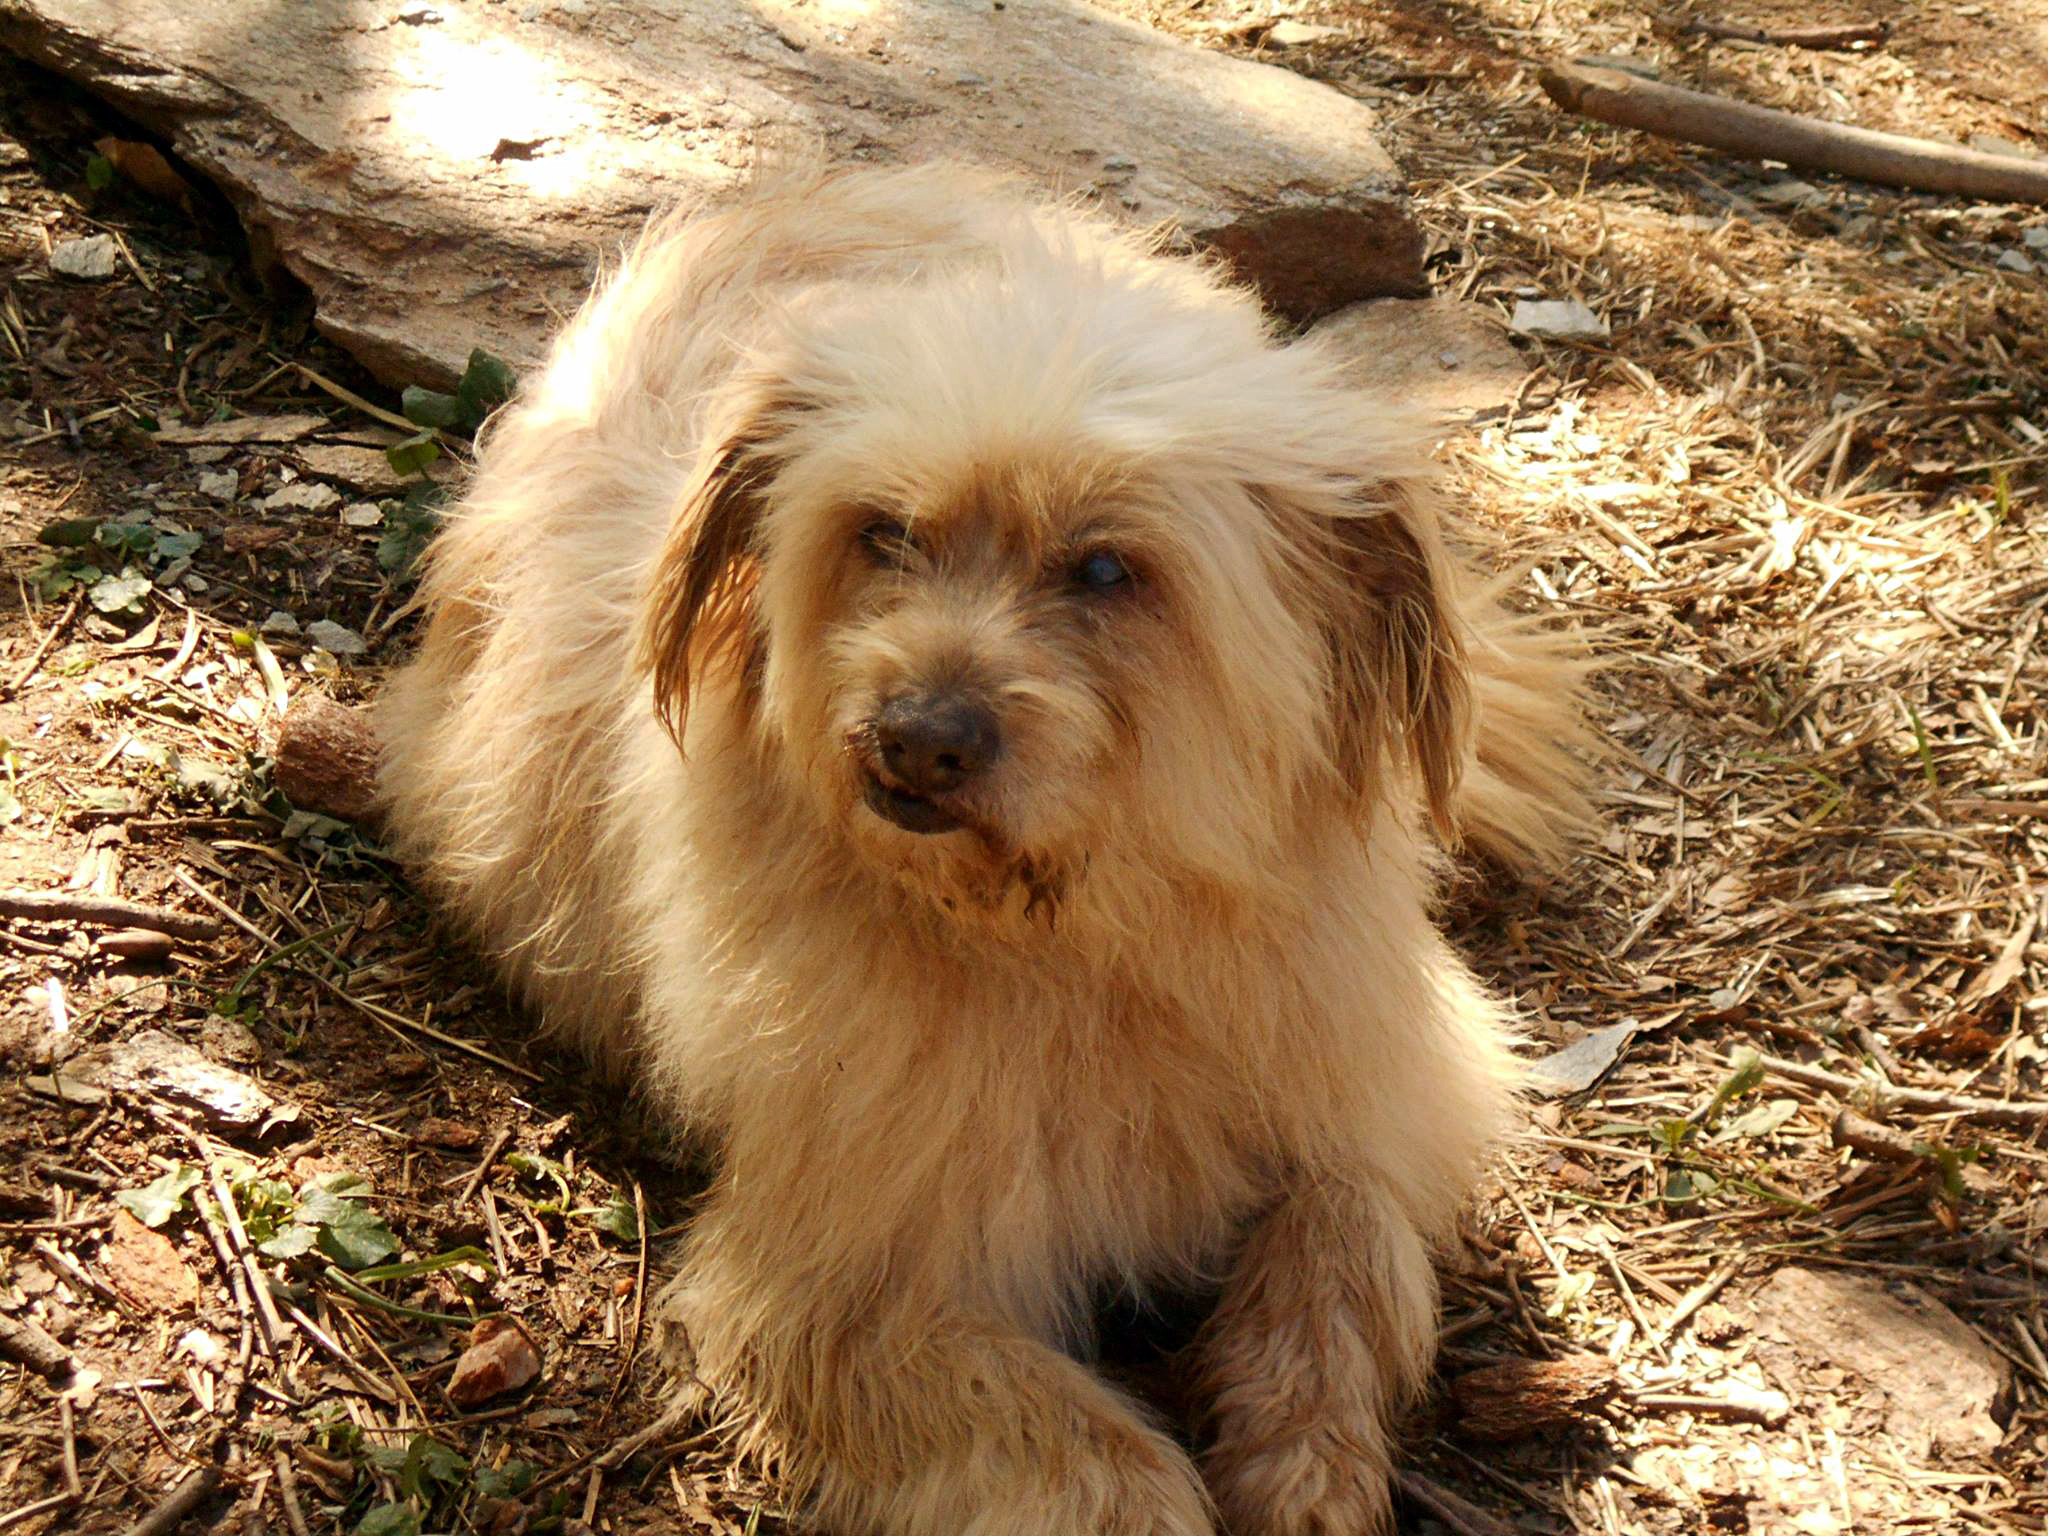 vanglouk-androsfilm-a-lost-dog-in-remata-andros-2016-dec-3